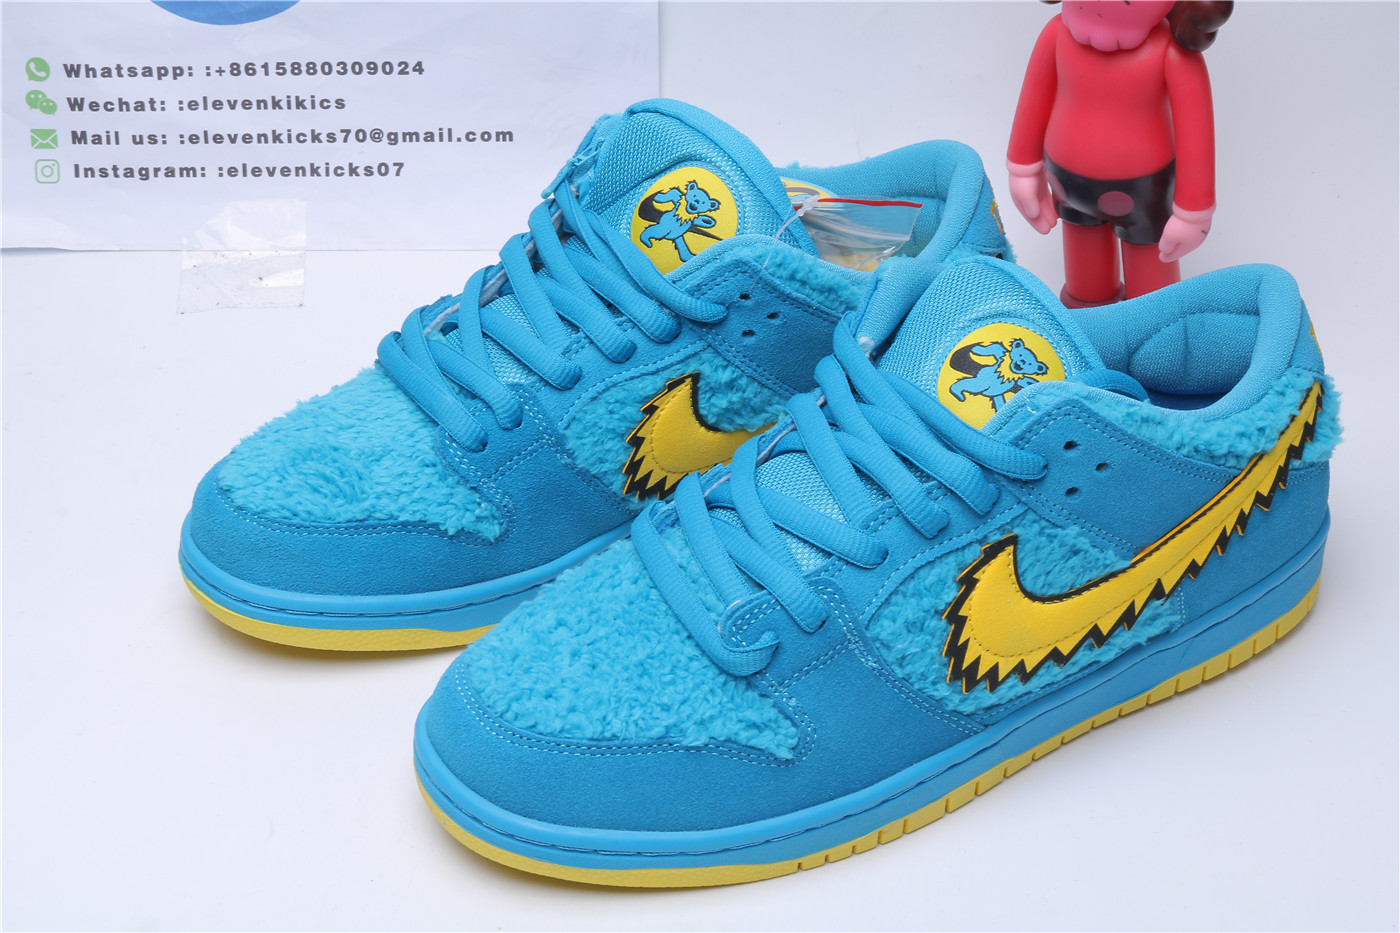 Nike SB Dunk Low Grateful Dead Bears Blue